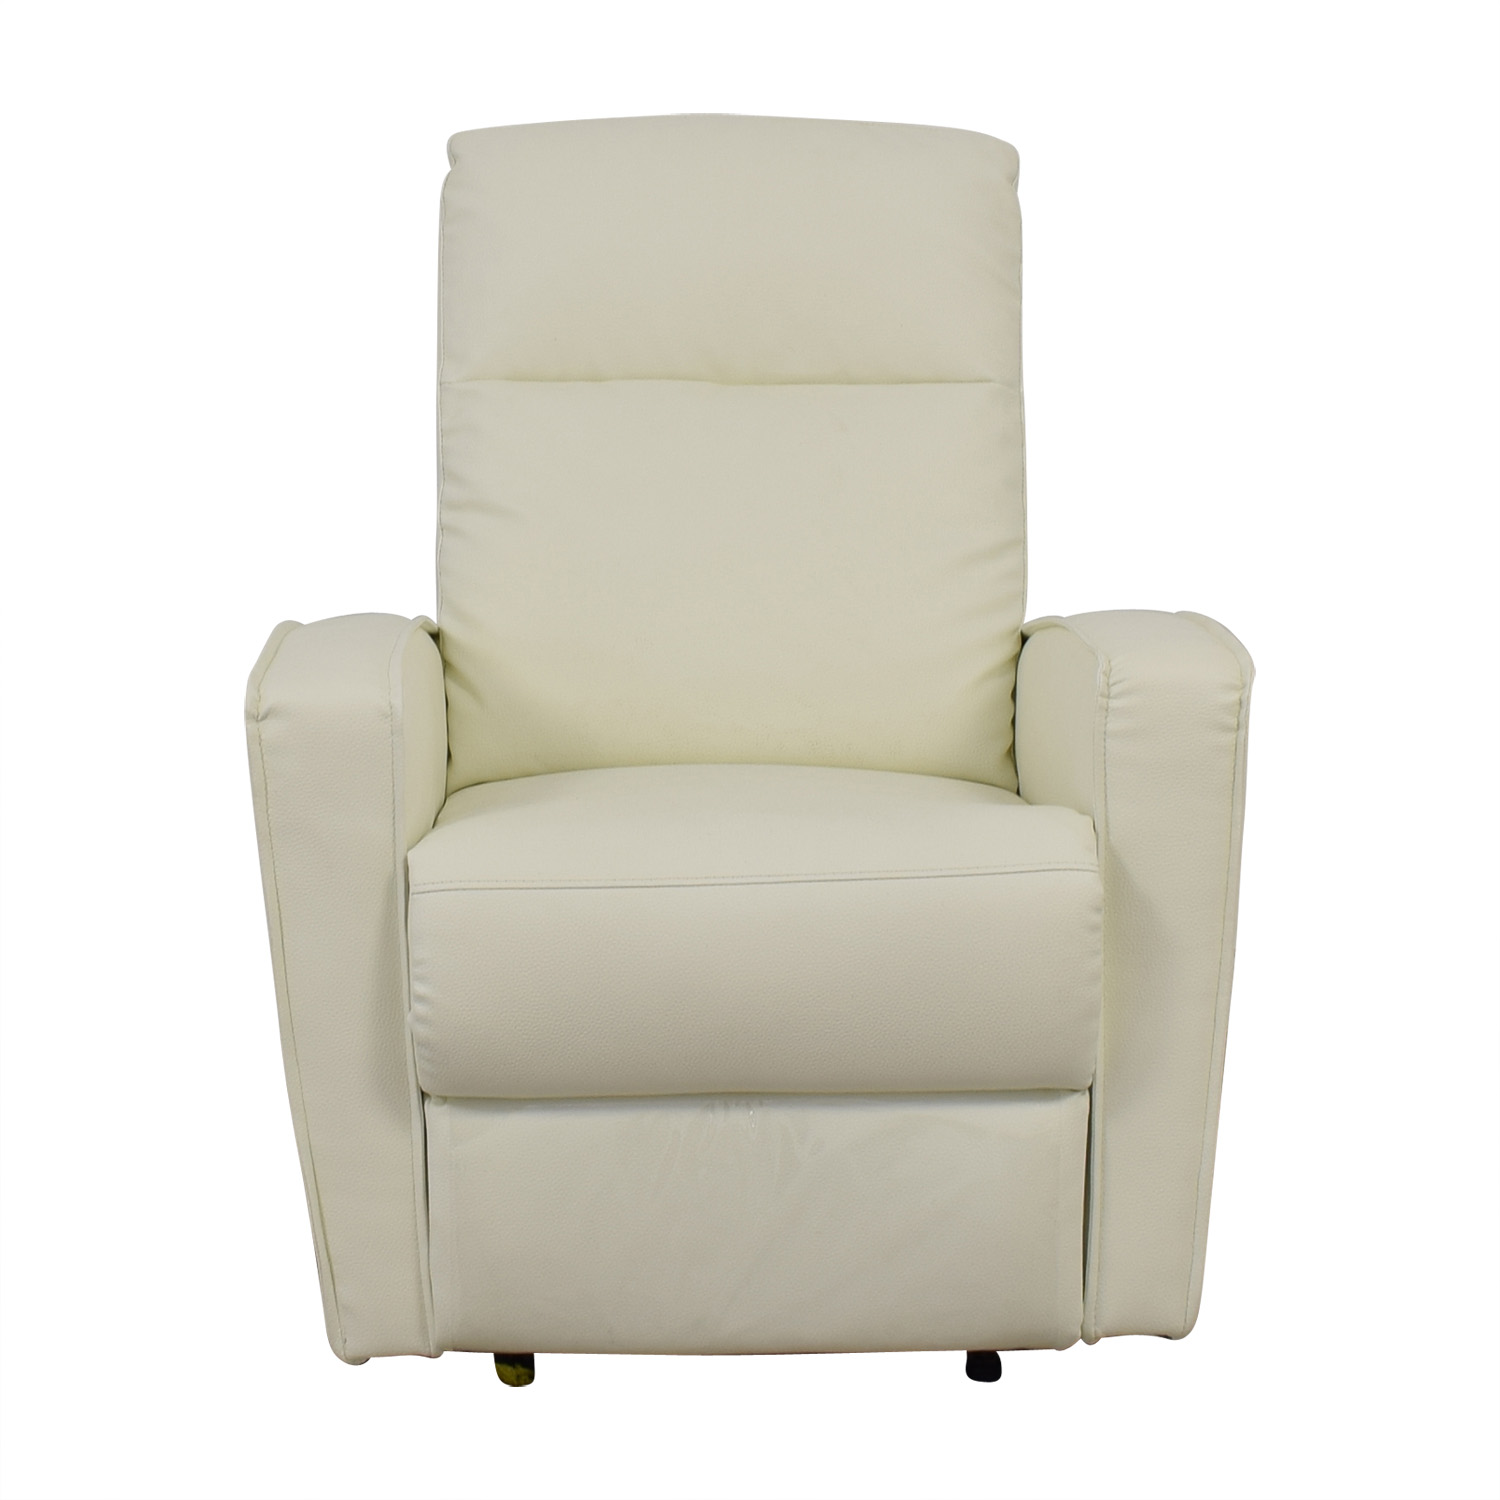 Modani Modani Helmi White Leather Lounge Recliner discount